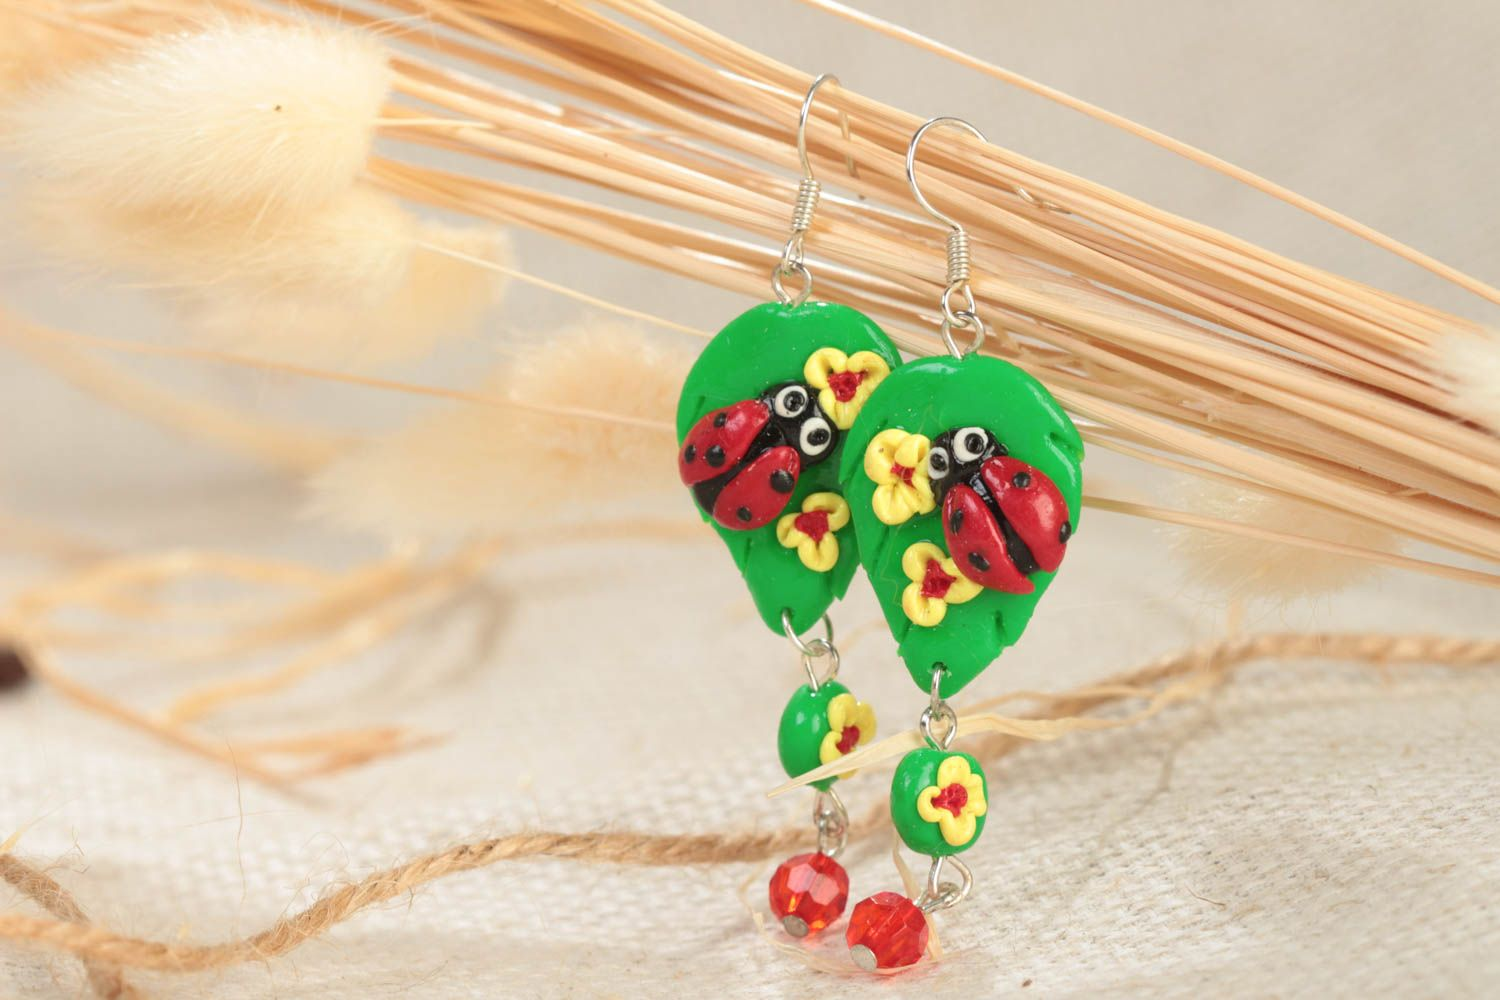 Handmade bright green long dangling polymer clay earrings with ladybugs photo 1